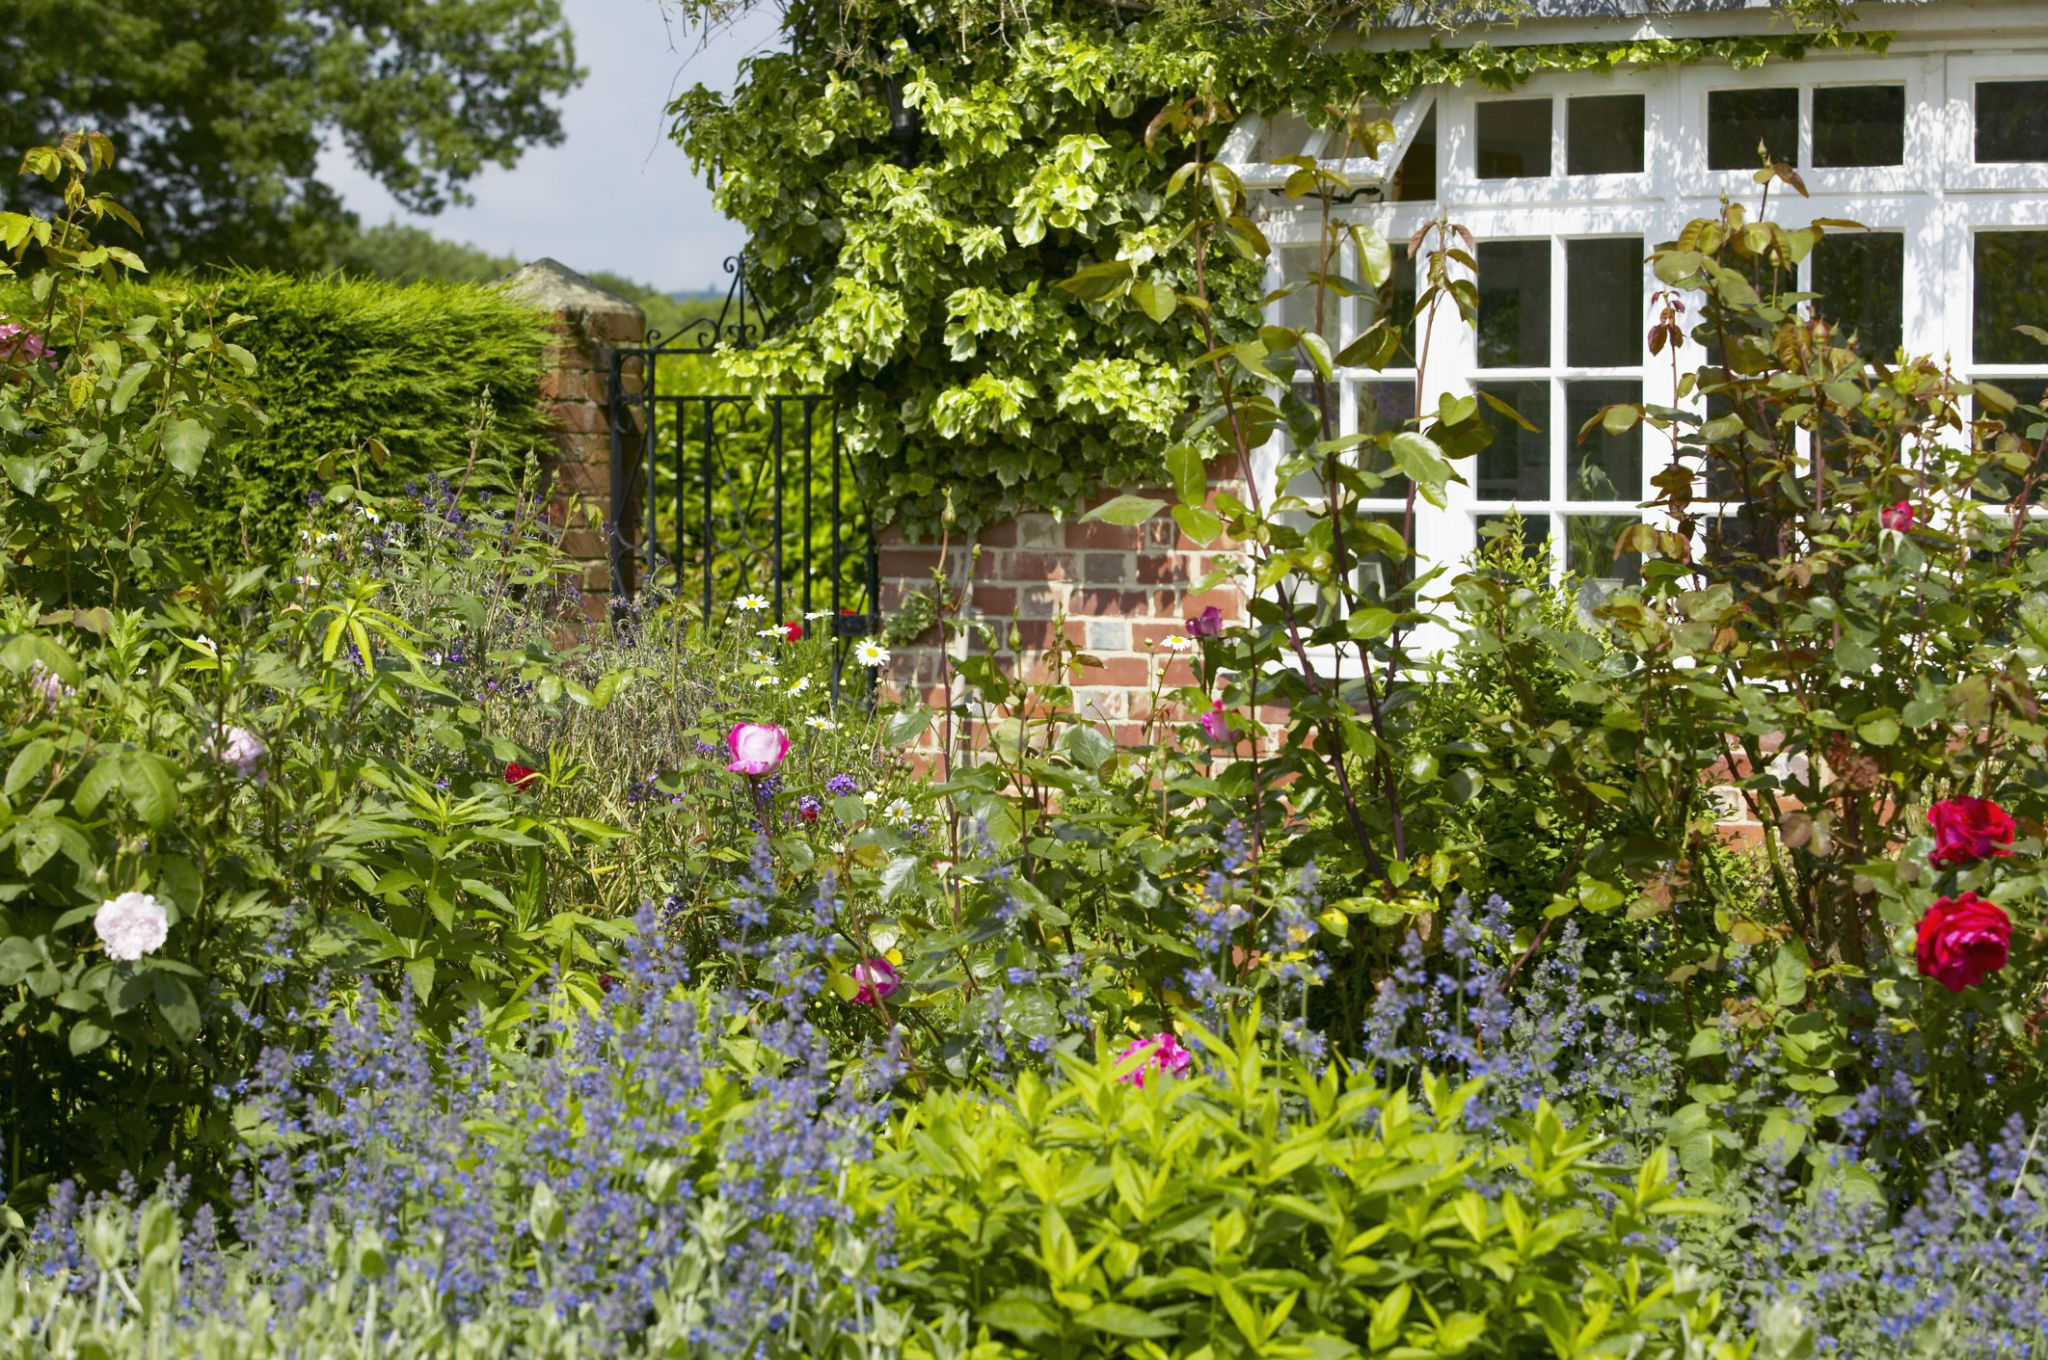 cottage gardens border infront of house with view to gate, the lowes garden, the ZMRTVKE